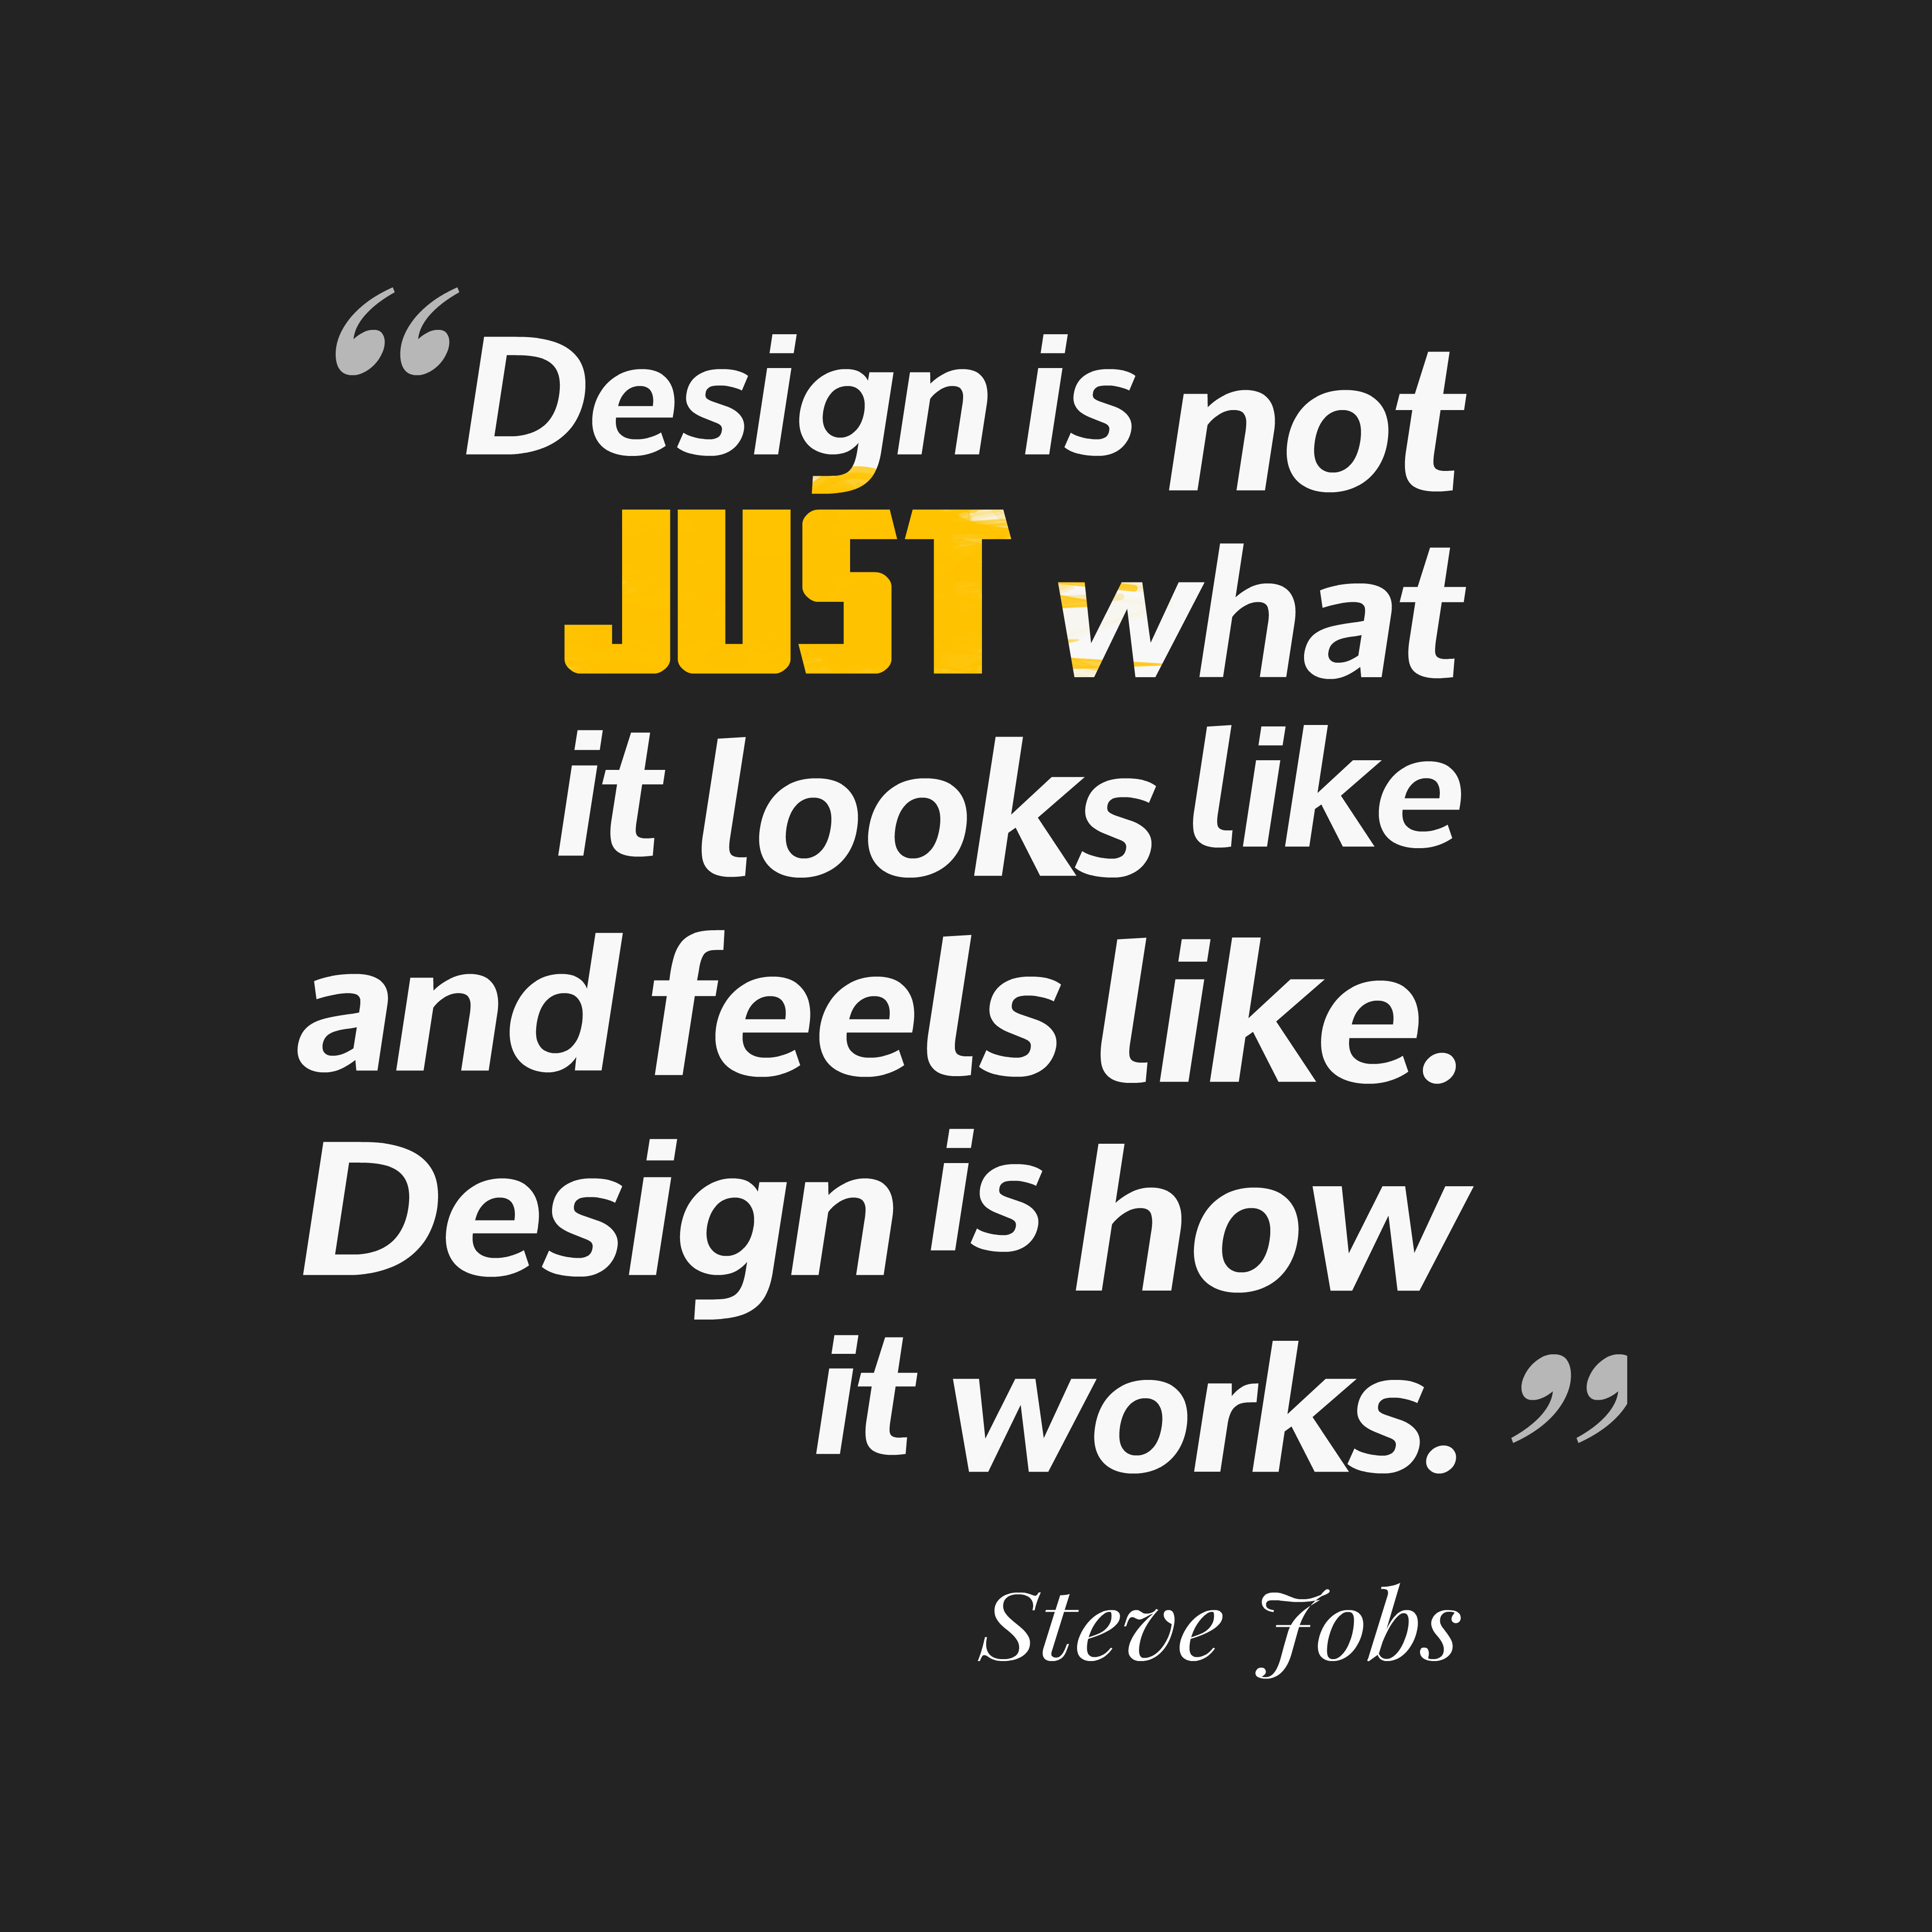 steve jobs quotes about design